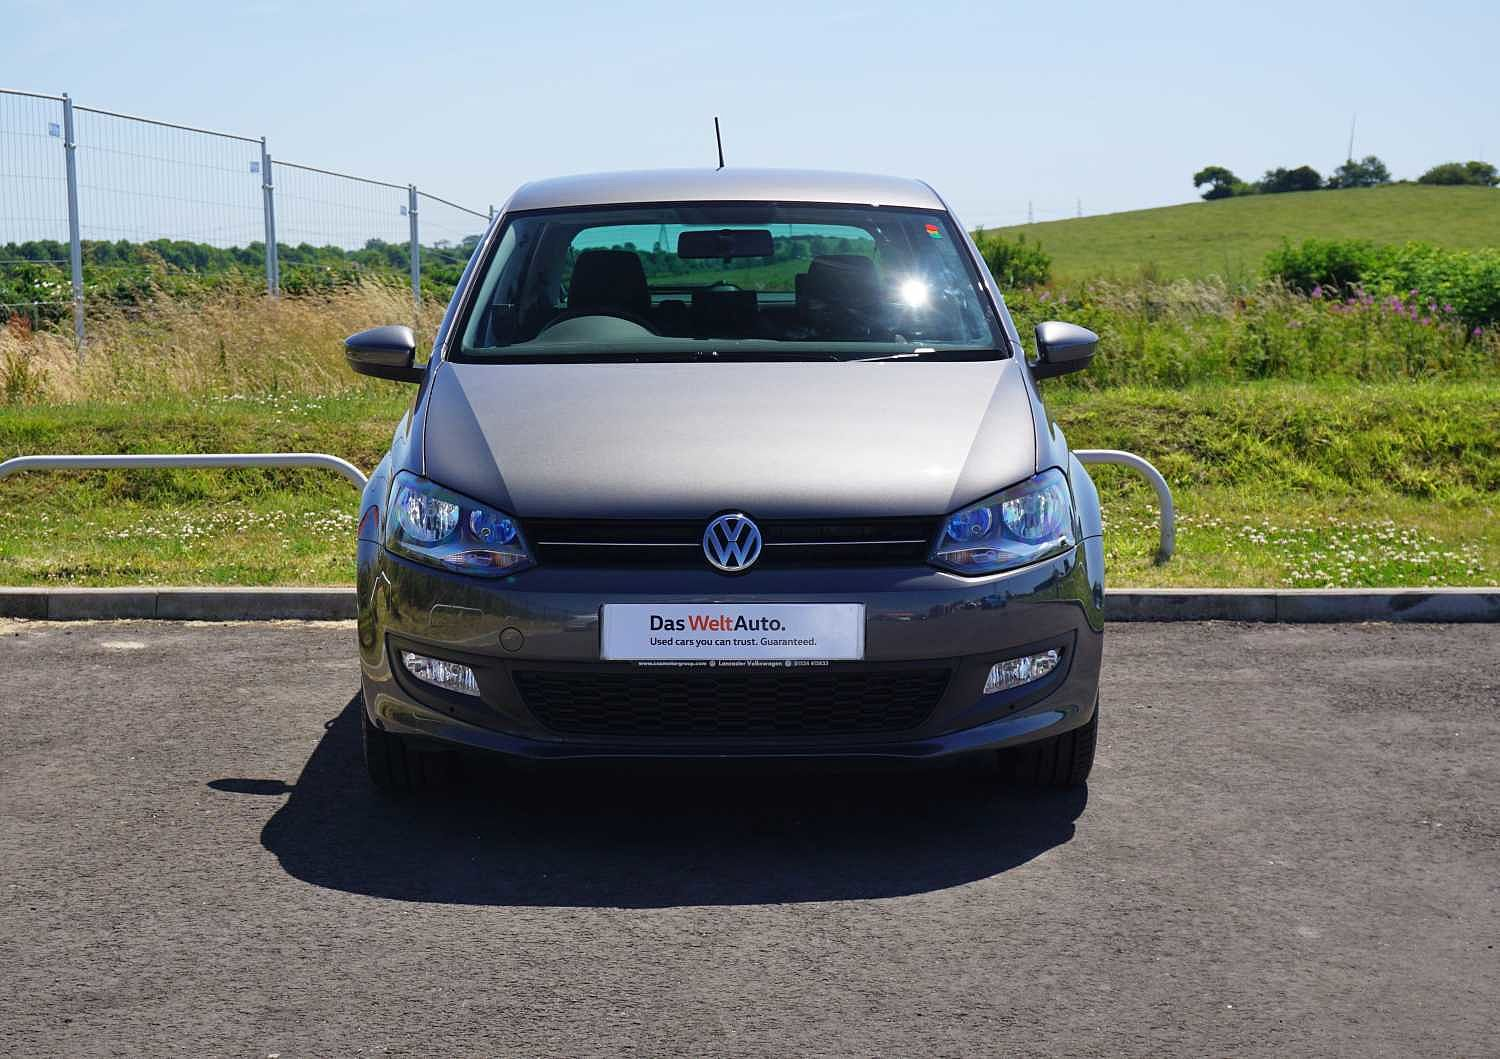 Volkswagen Polo 1.2 60PS Match 5Dr